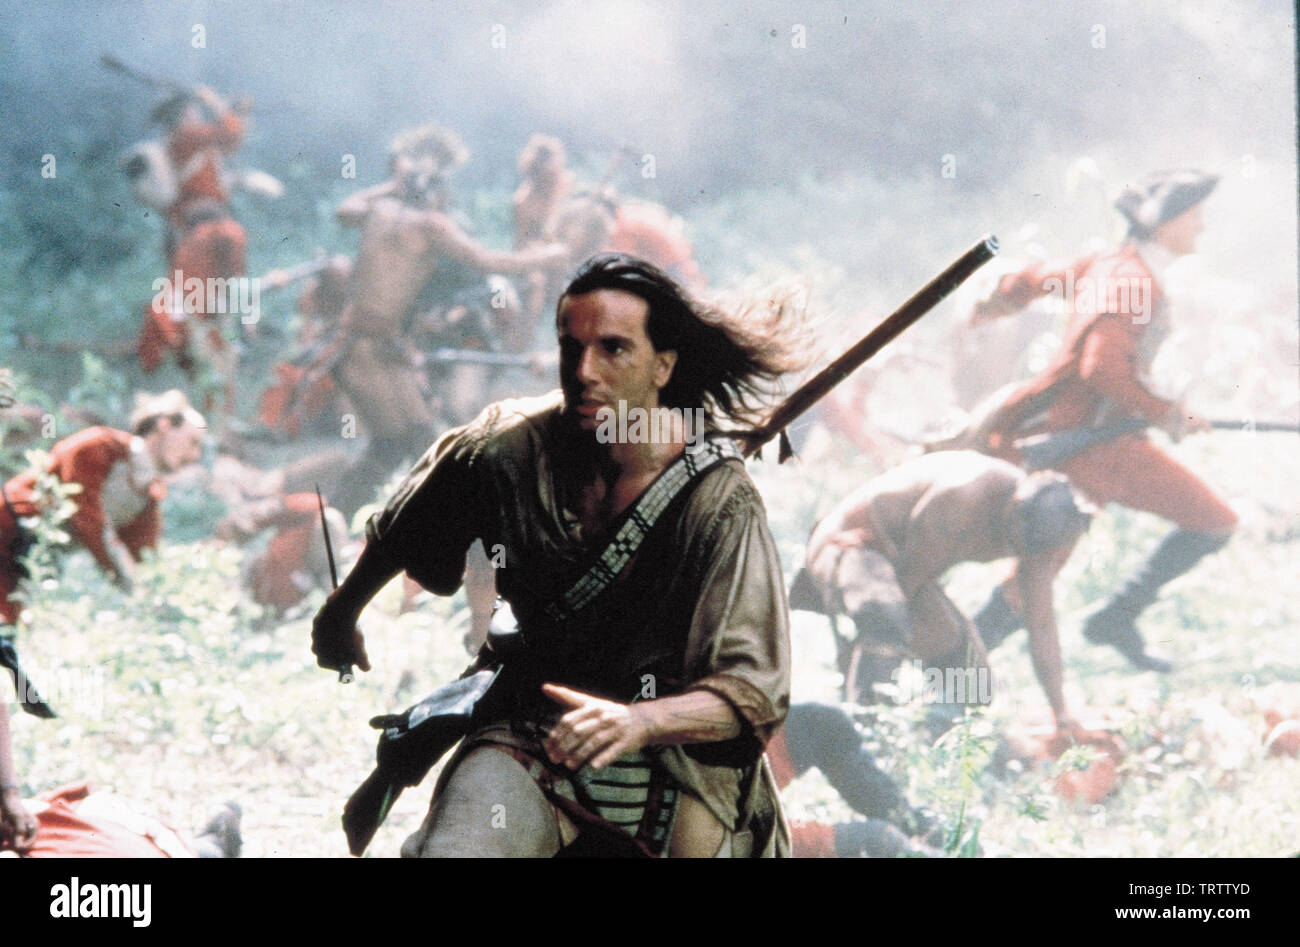 DANIEL DAY-LEWIS in THE LAST OF THE MOHICANS (1992). Copyright: Editorial use only. No merchandising or book covers. This is a publicly distributed handout. Access rights only, no license of copyright provided. Only to be reproduced in conjunction with promotion of this film. Credit: 20TH CENTURY FOX/MORGAN CREEK / Album - Stock Image